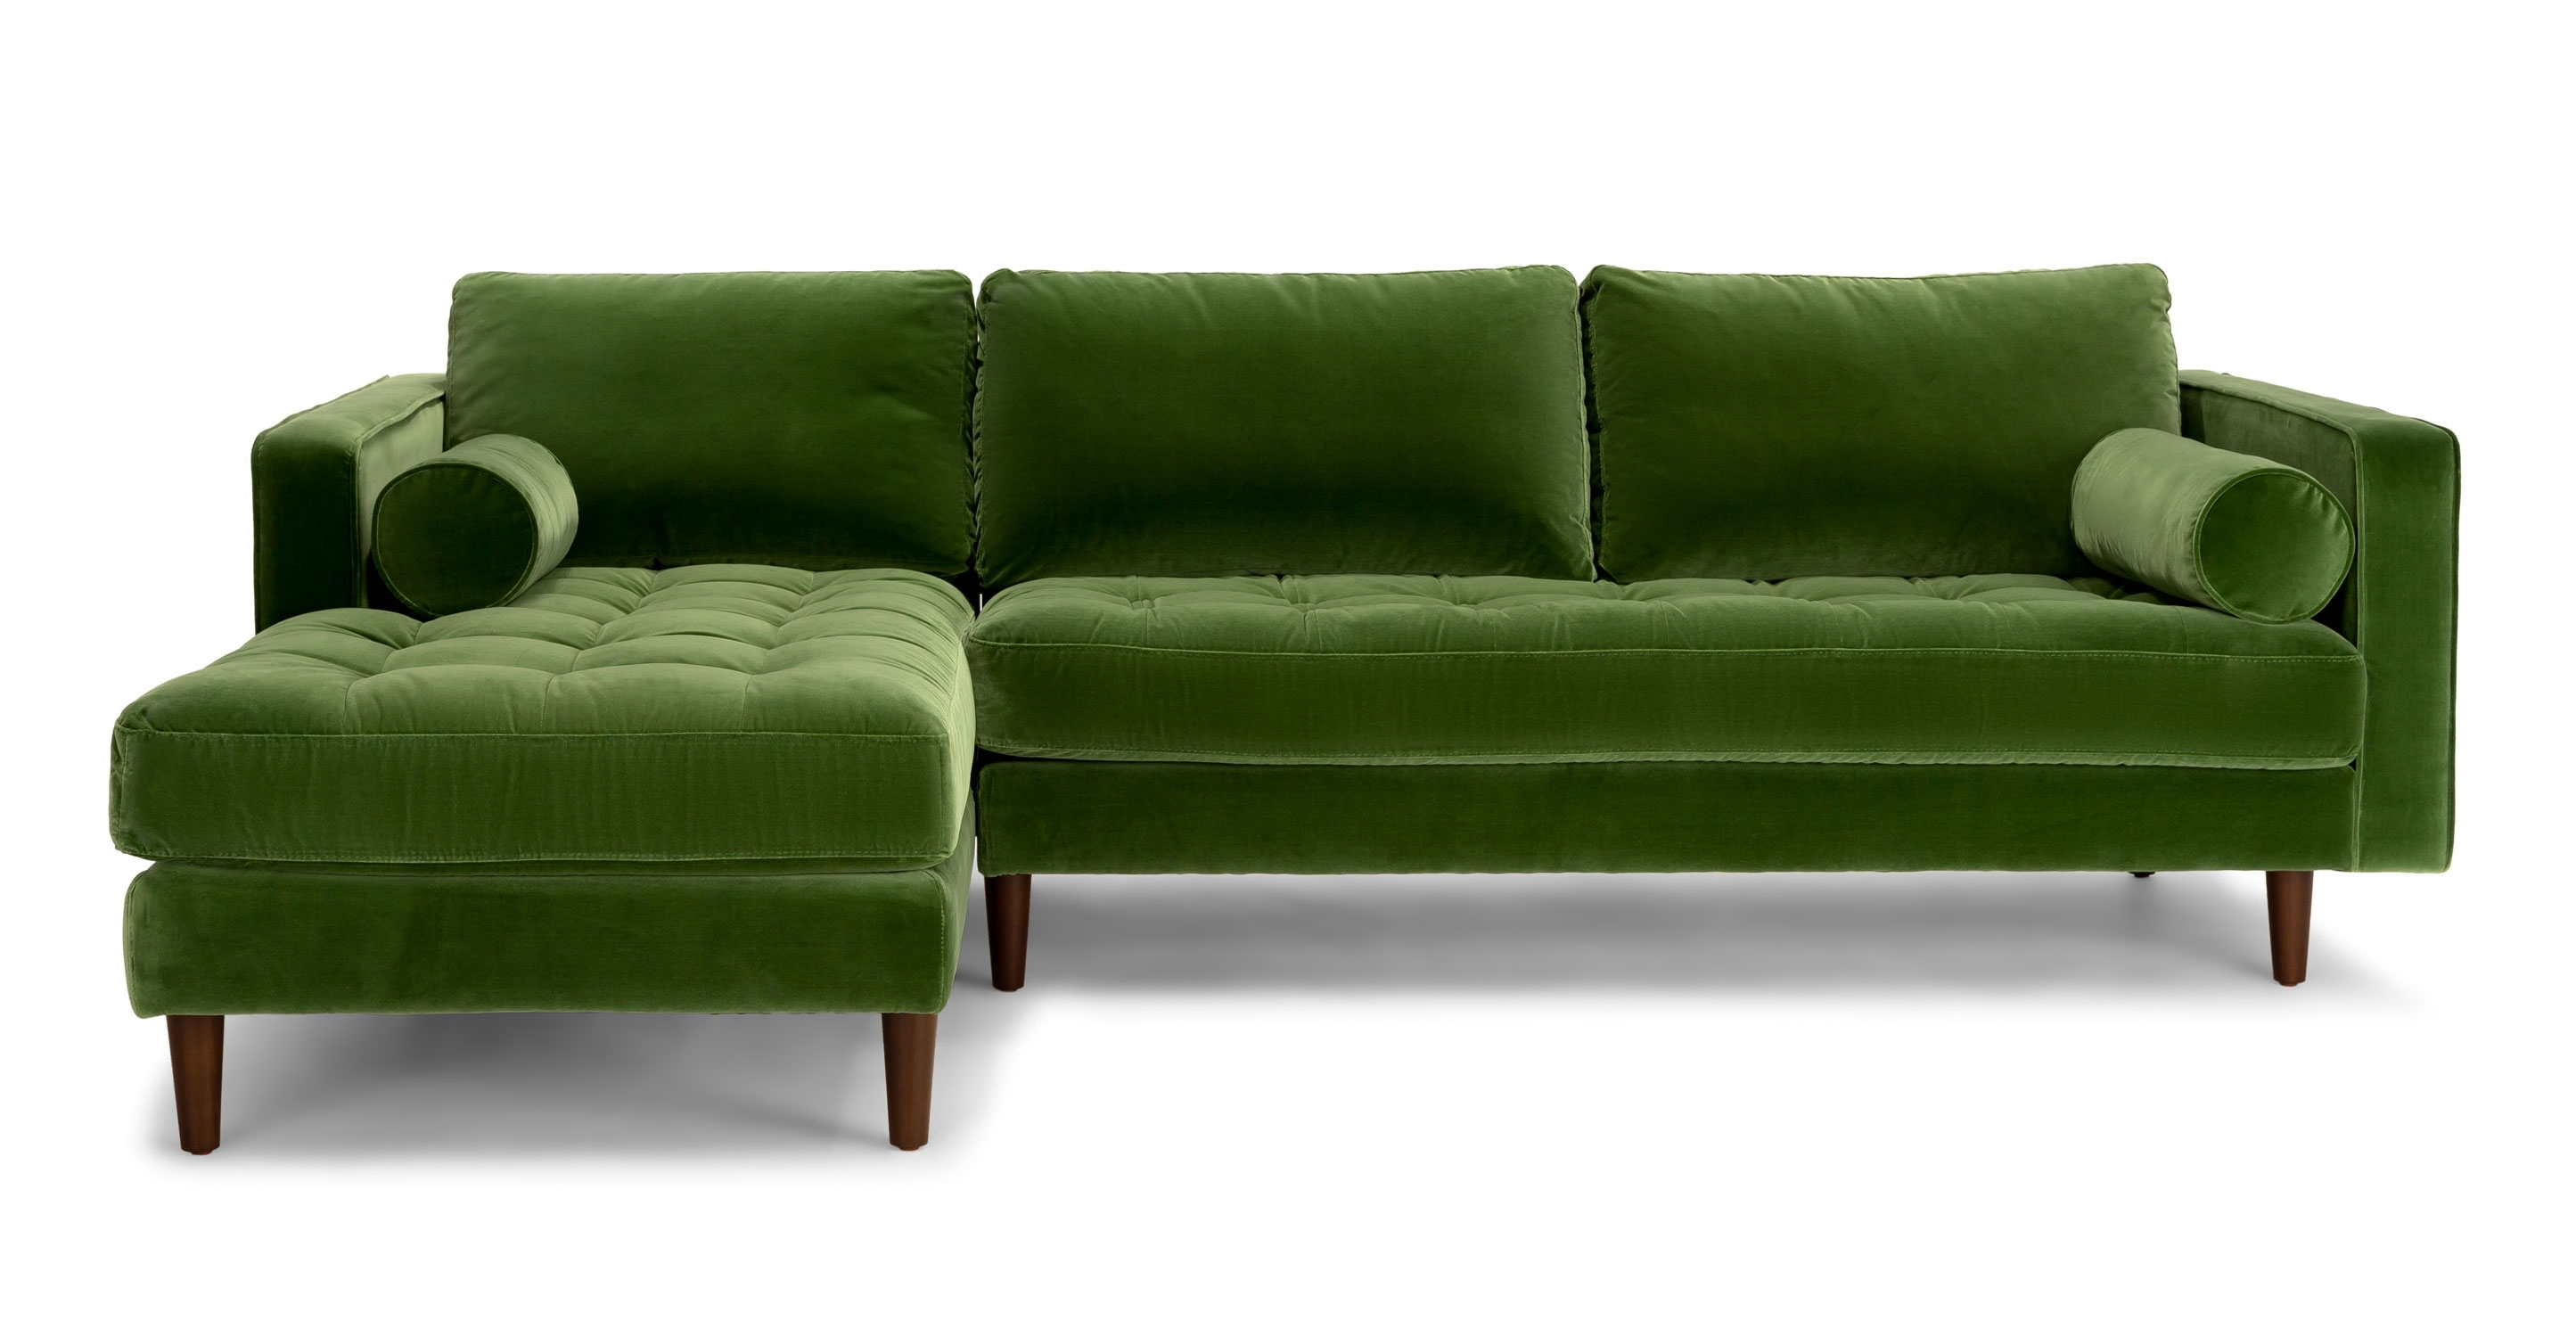 Olive Green Chenille Fabrical Sofa Seafoam Emerald Leather Sage Inside Green Sectional Sofas (View 2 of 10)